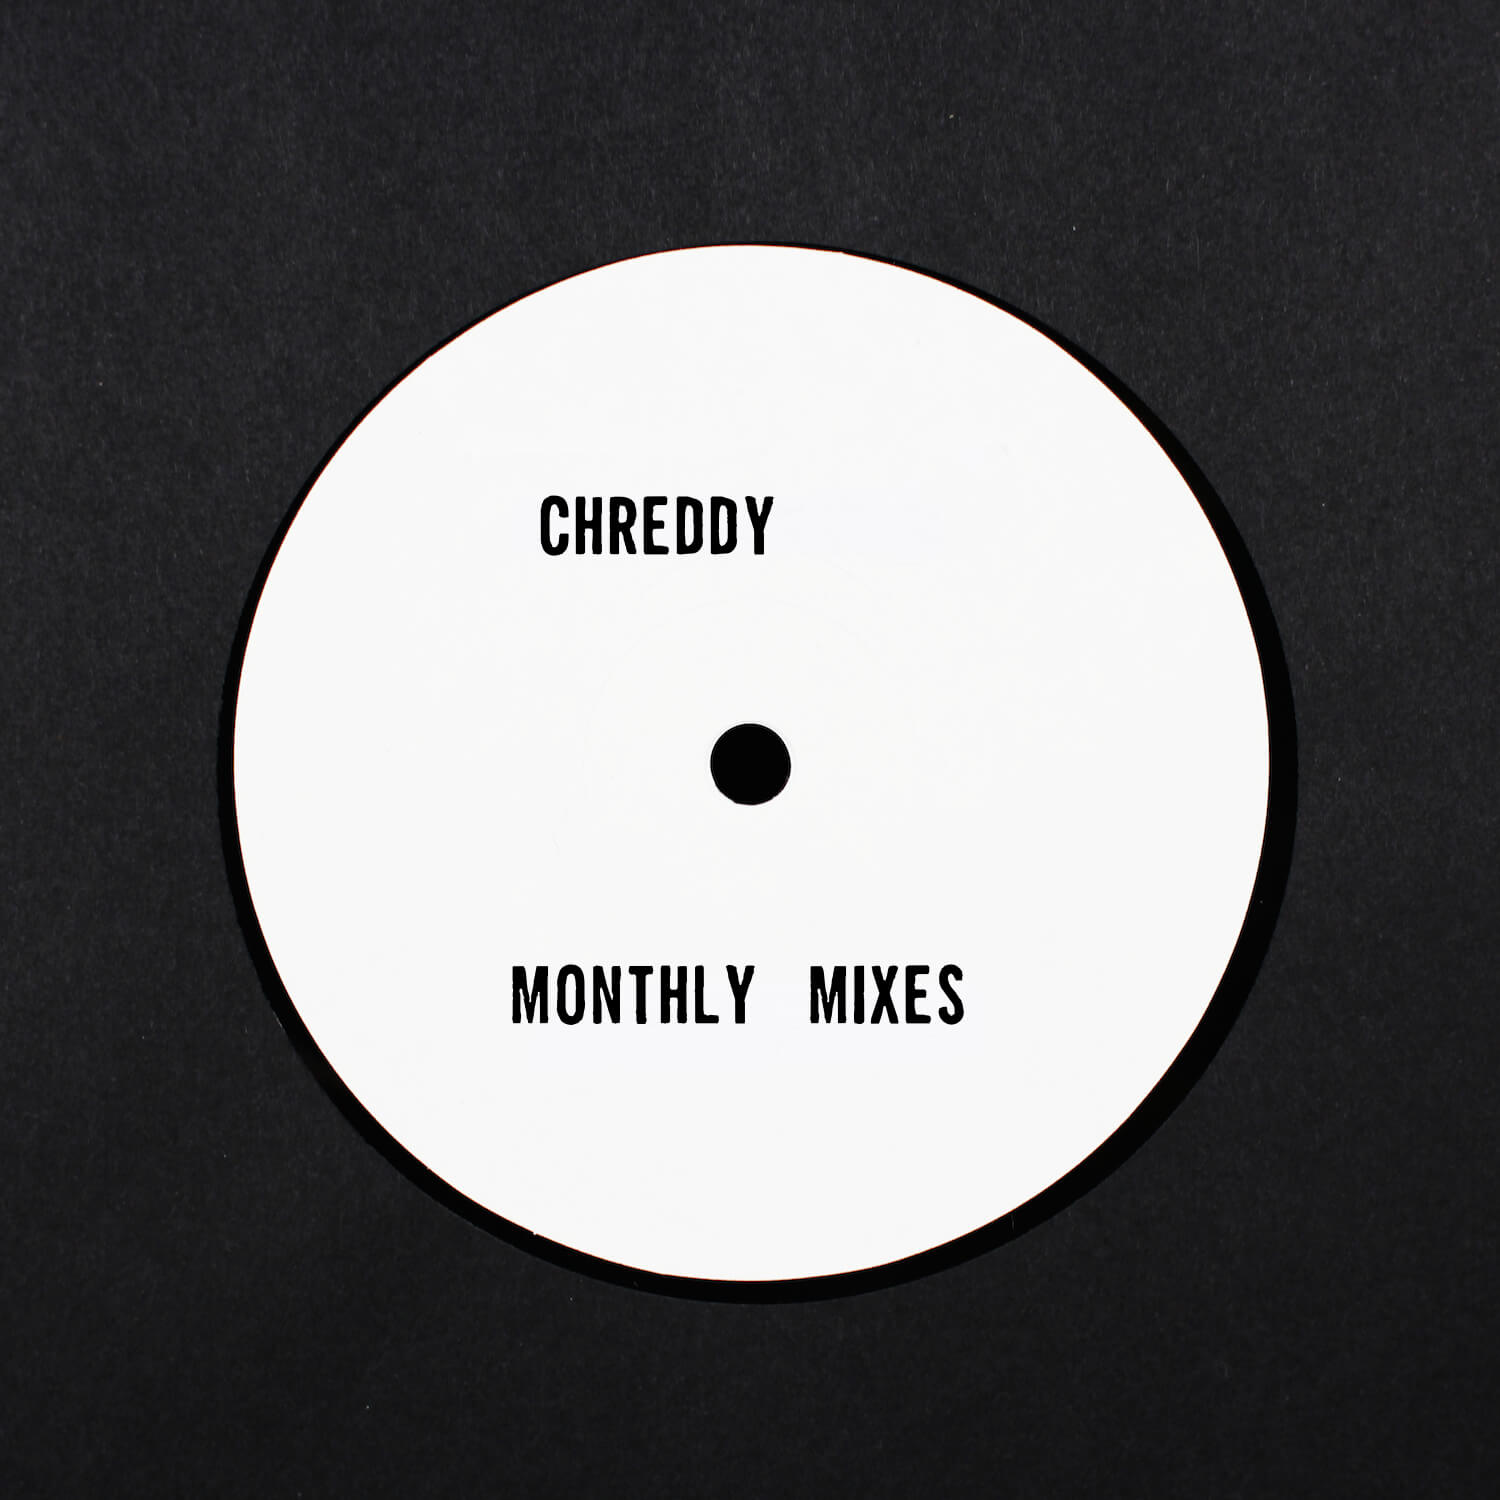 Chreddy's Monthly Mixes